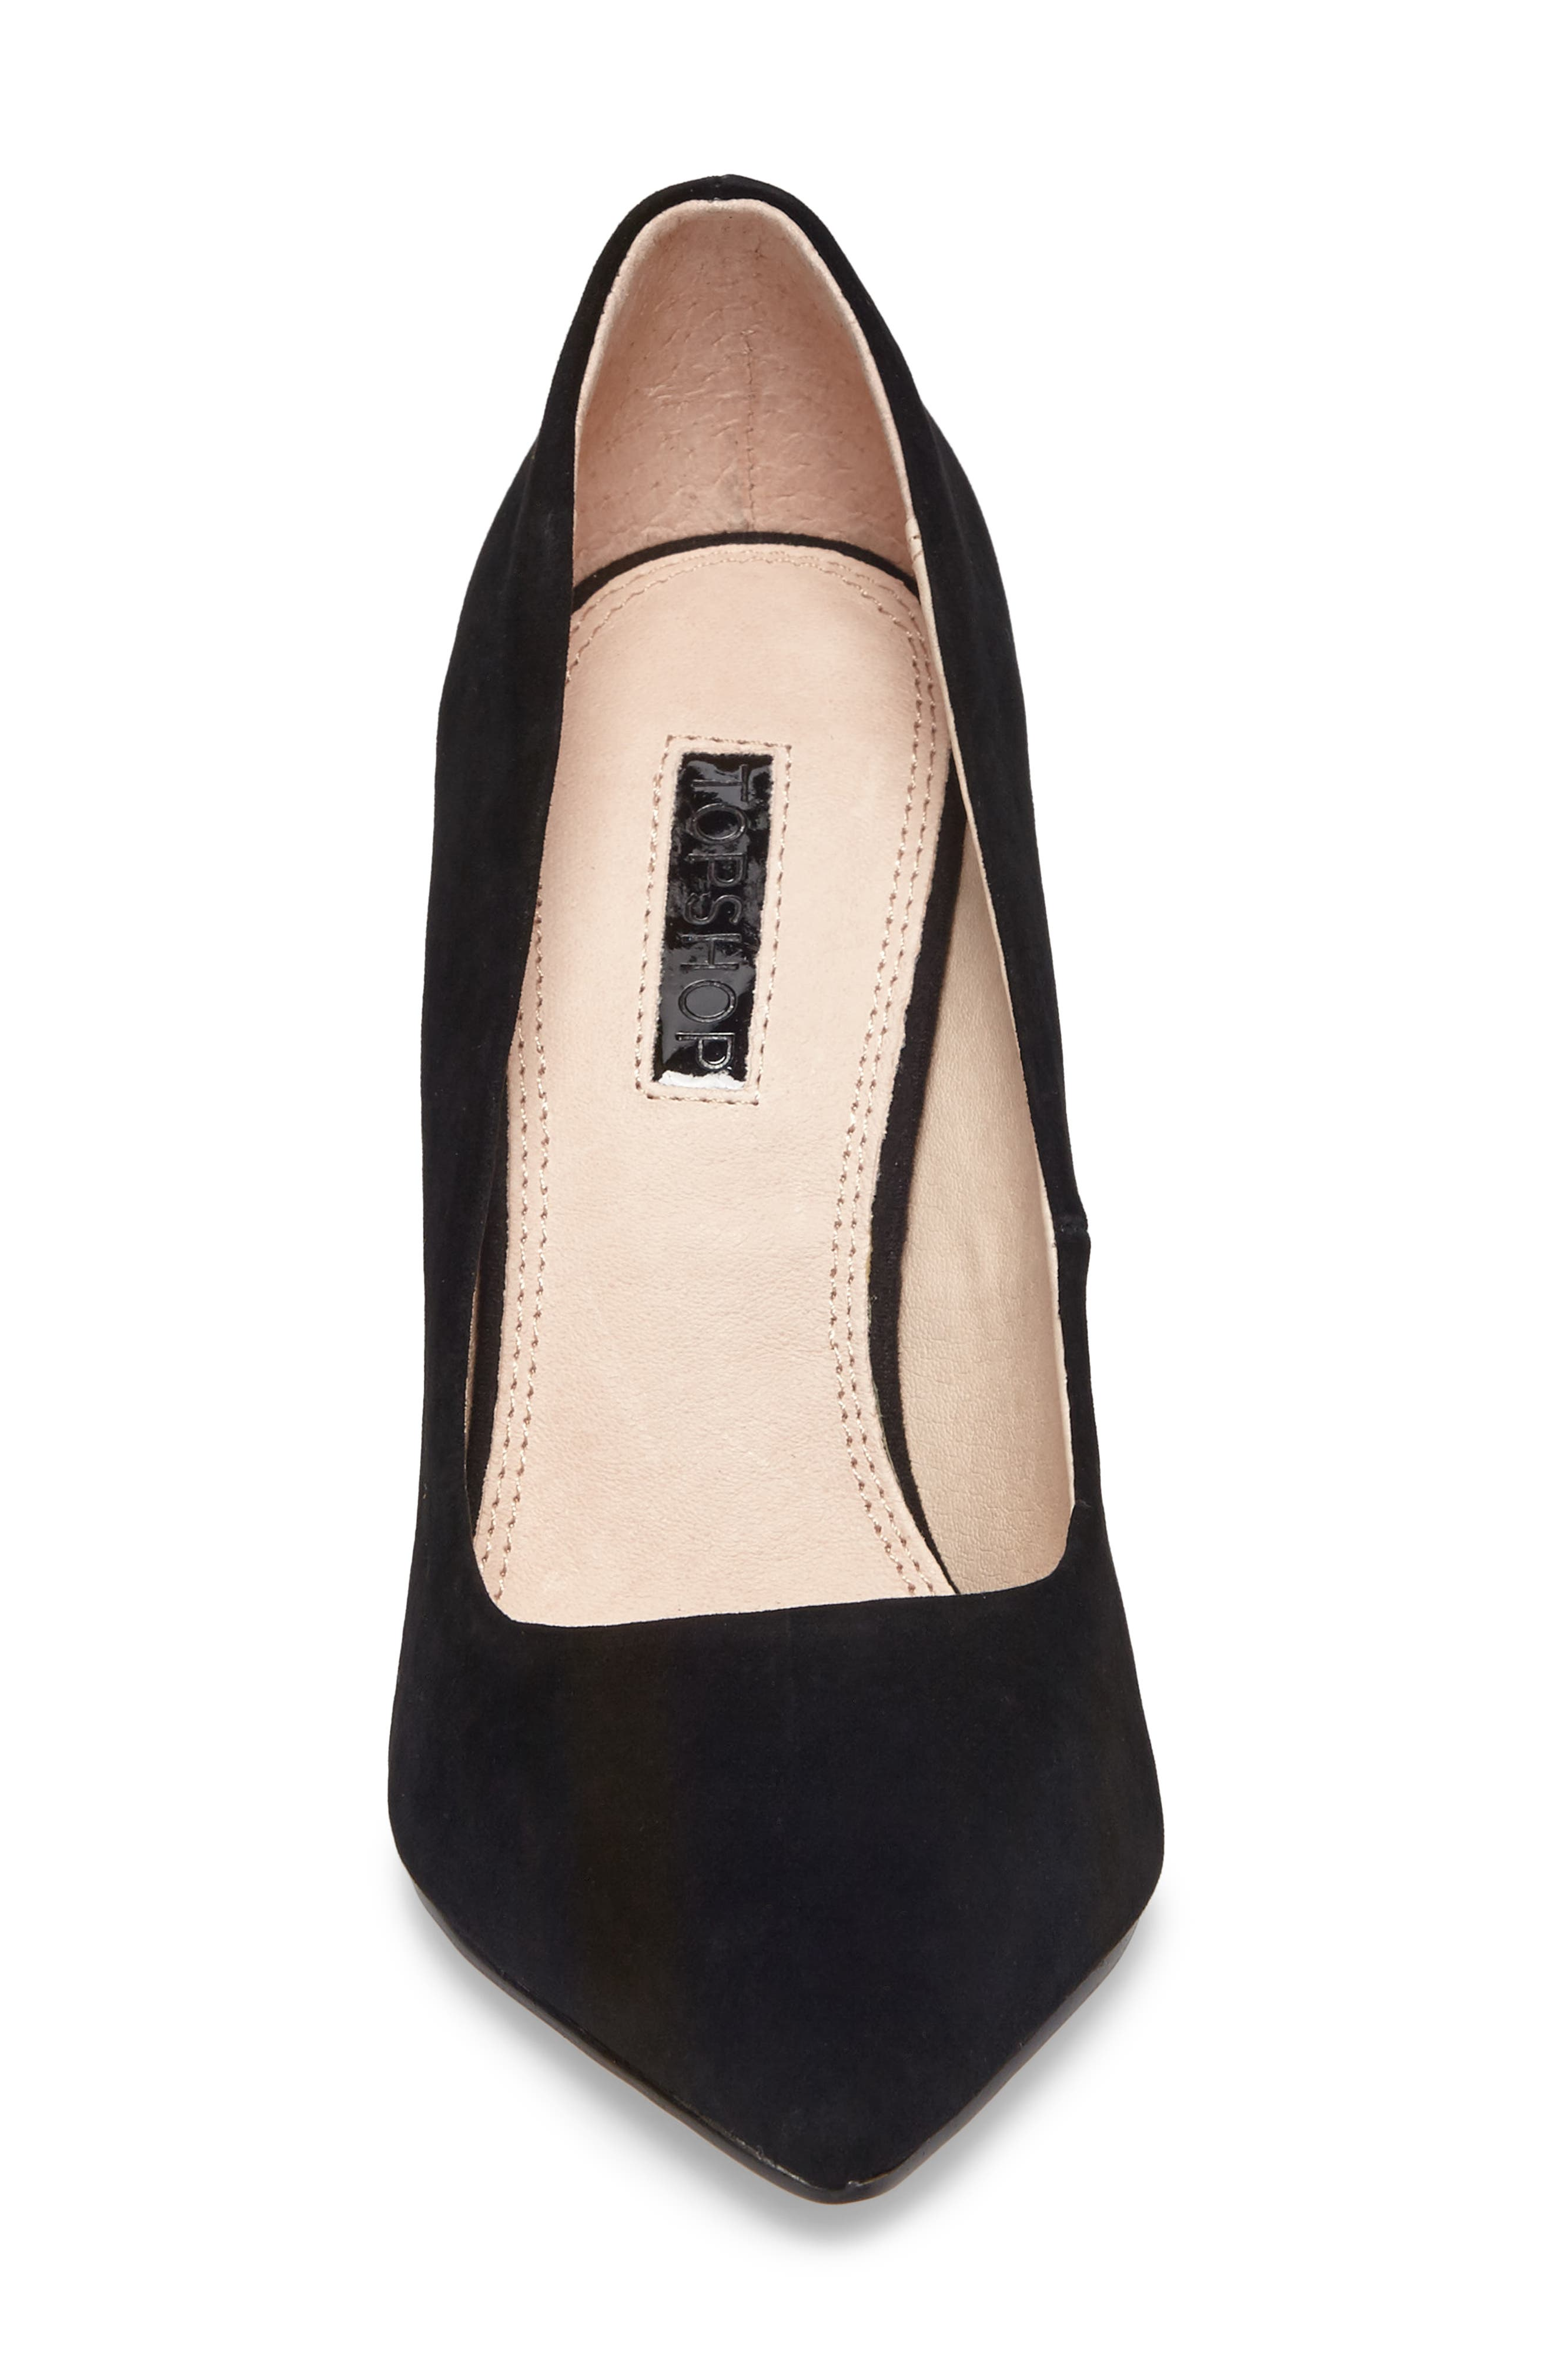 Grammer Pointy Toe Pump,                             Alternate thumbnail 4, color,                             Black Leather